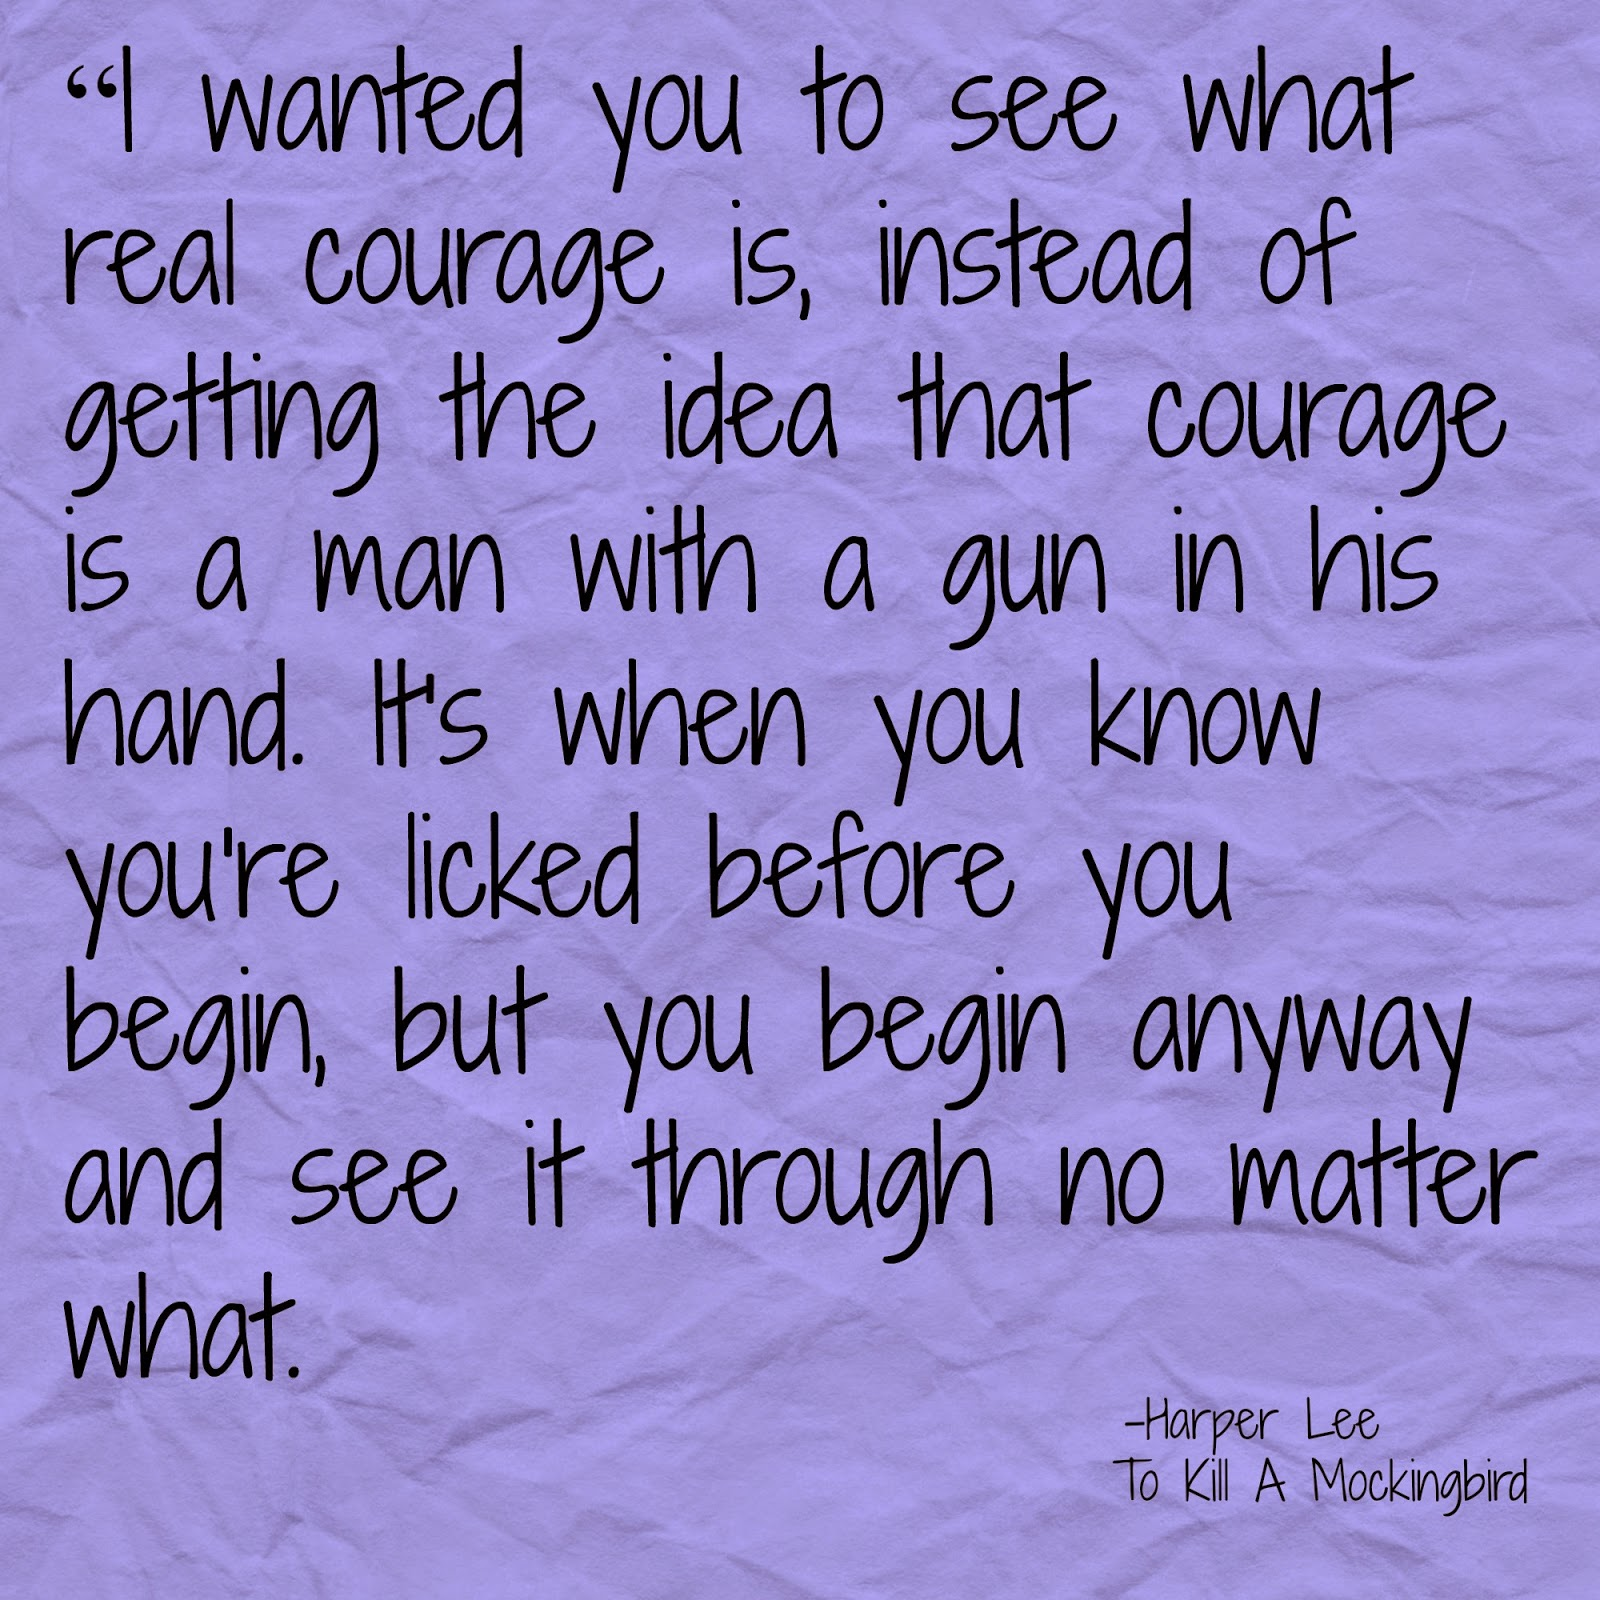 To Kill A Mockingbird quote on courage